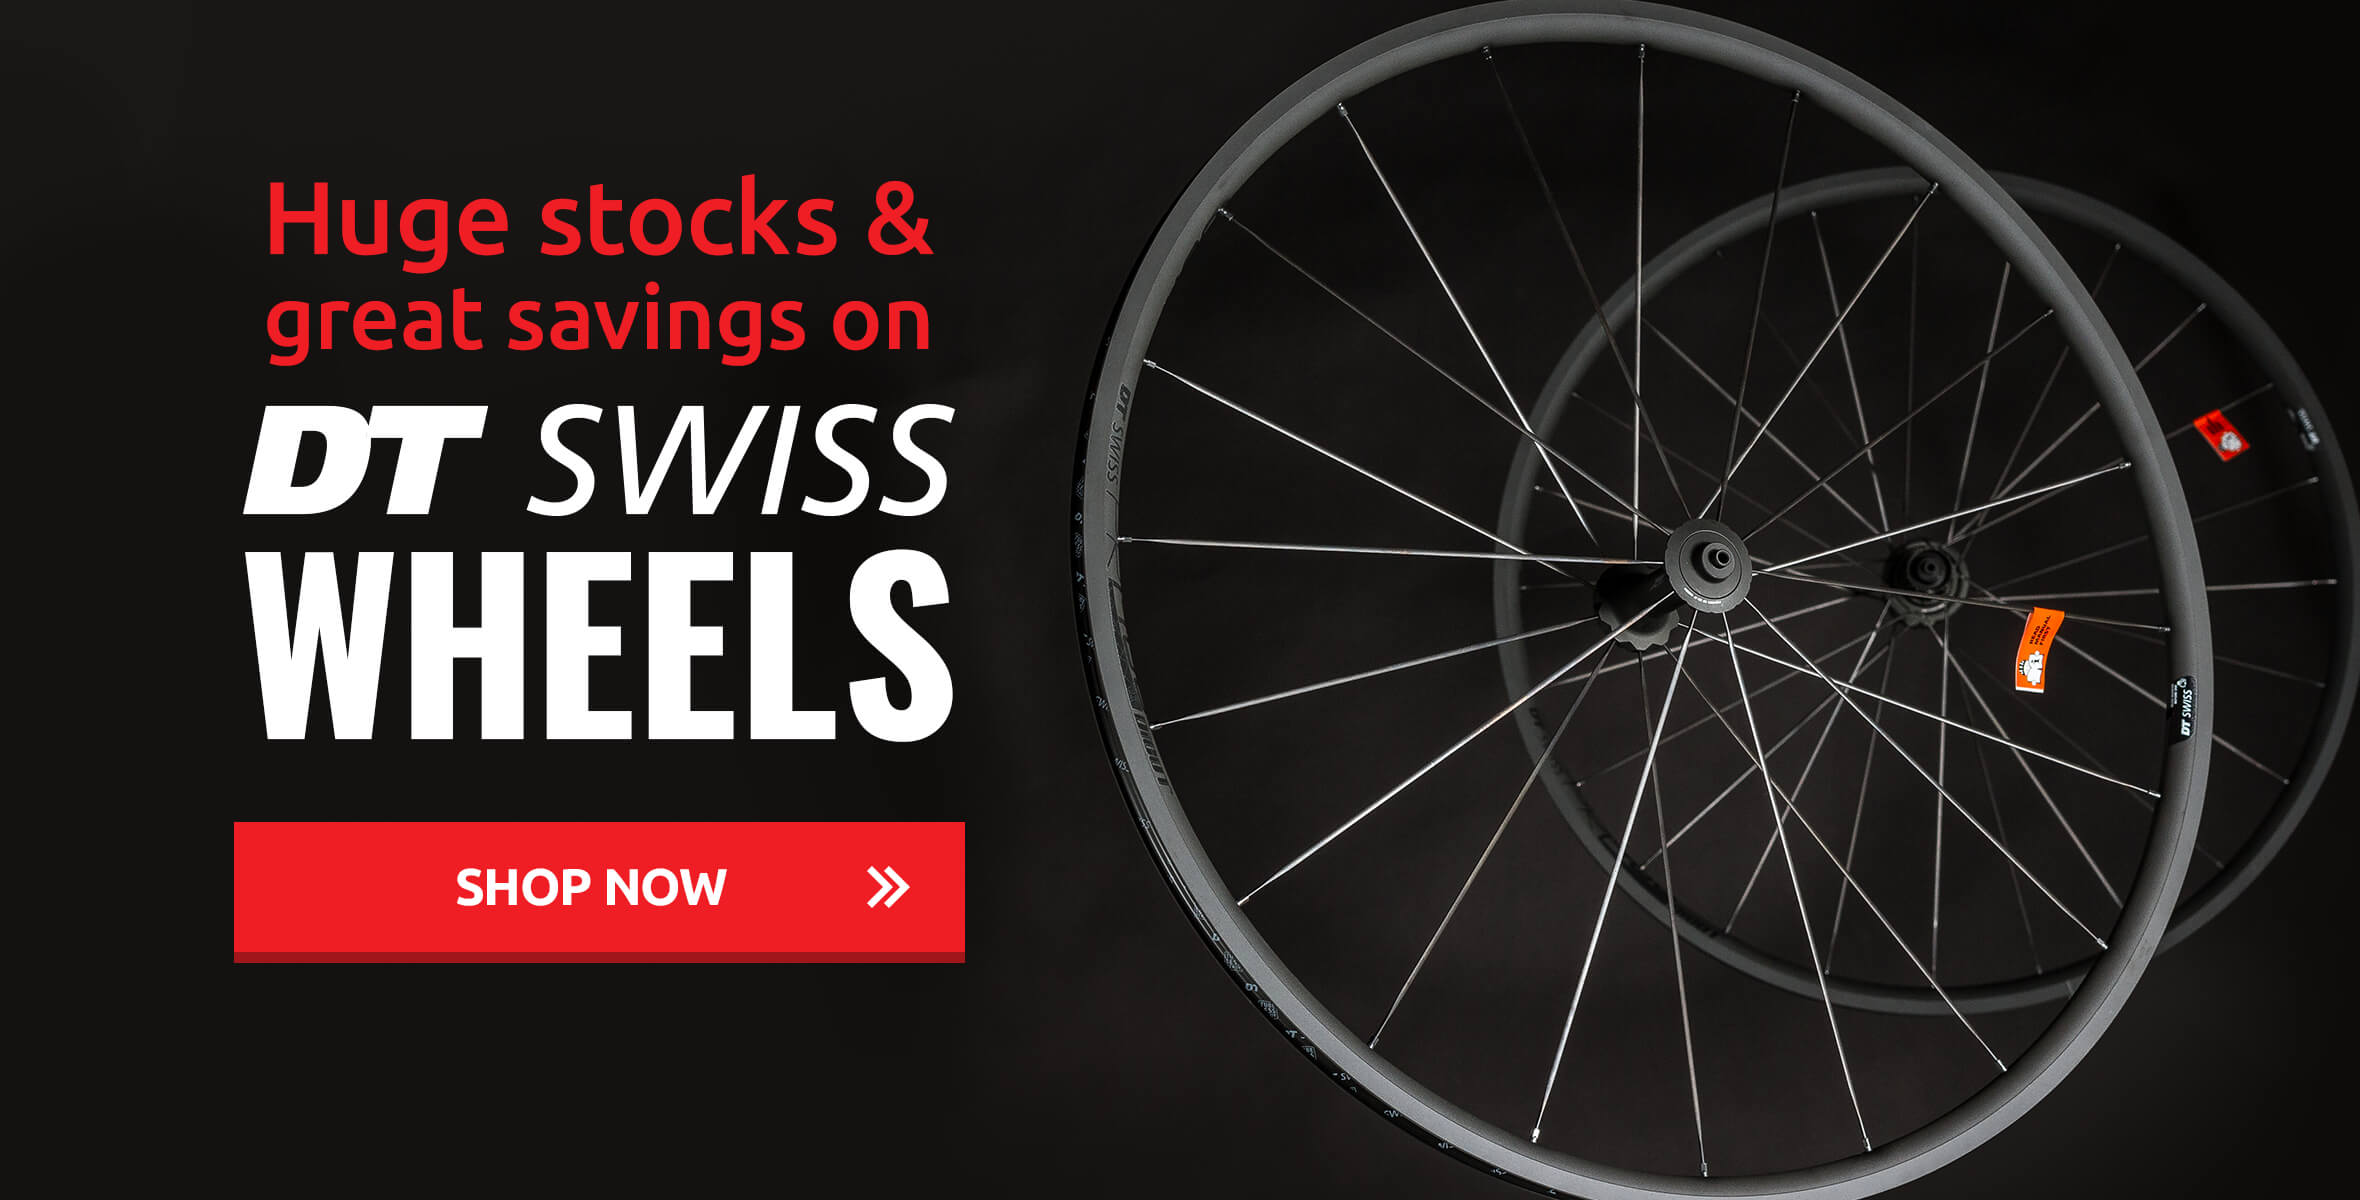 Huge Stocks & Great Savings on DT Swiss Wheels